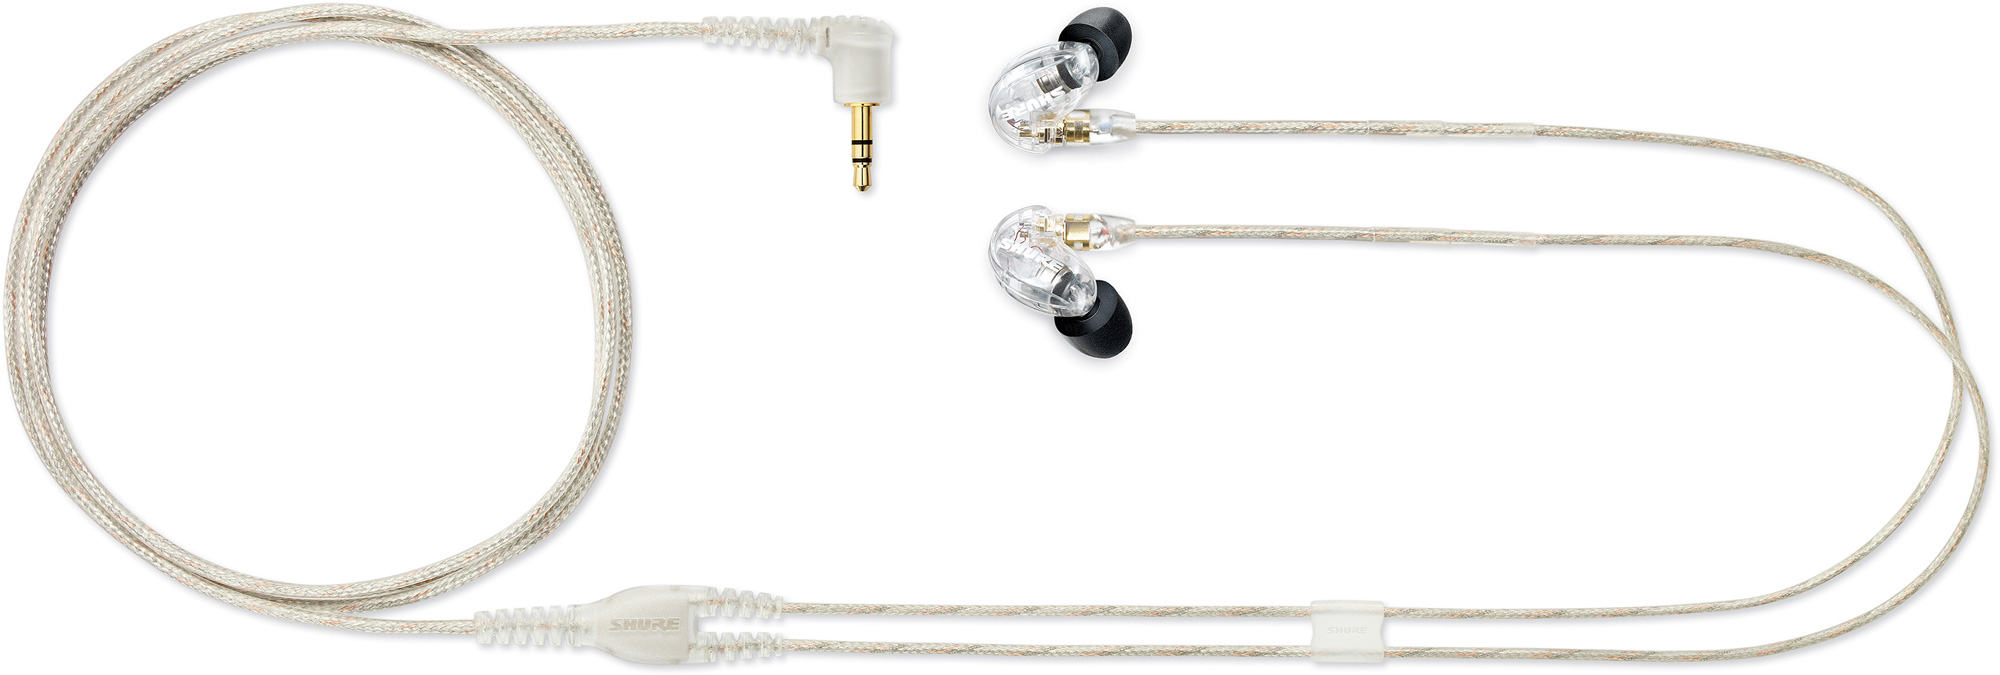 how to clean shure se215 earbuds